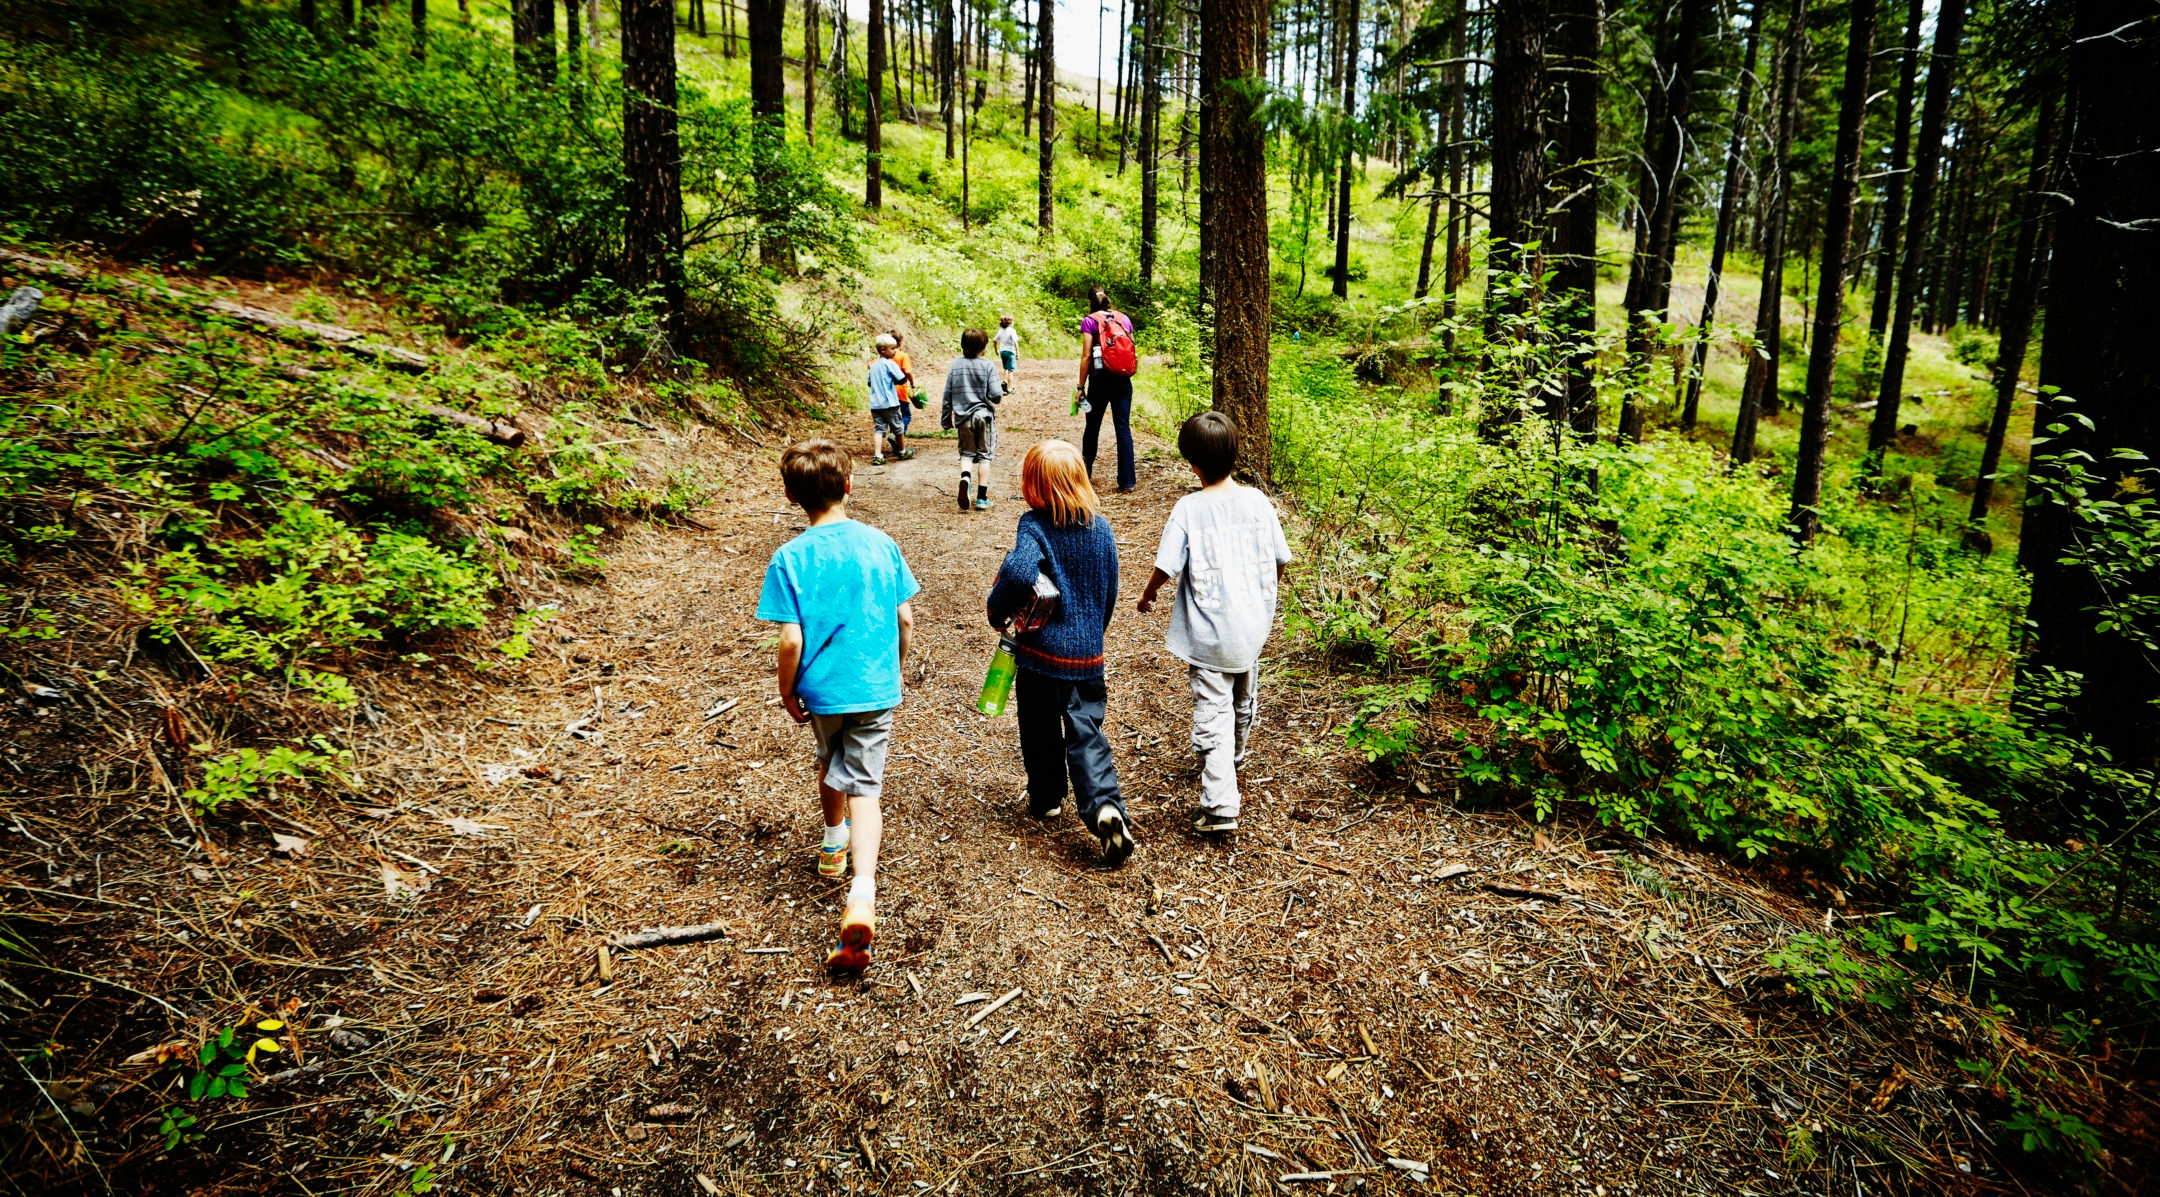 Jewish camp delays start date after counselor tests positive for coronavirus